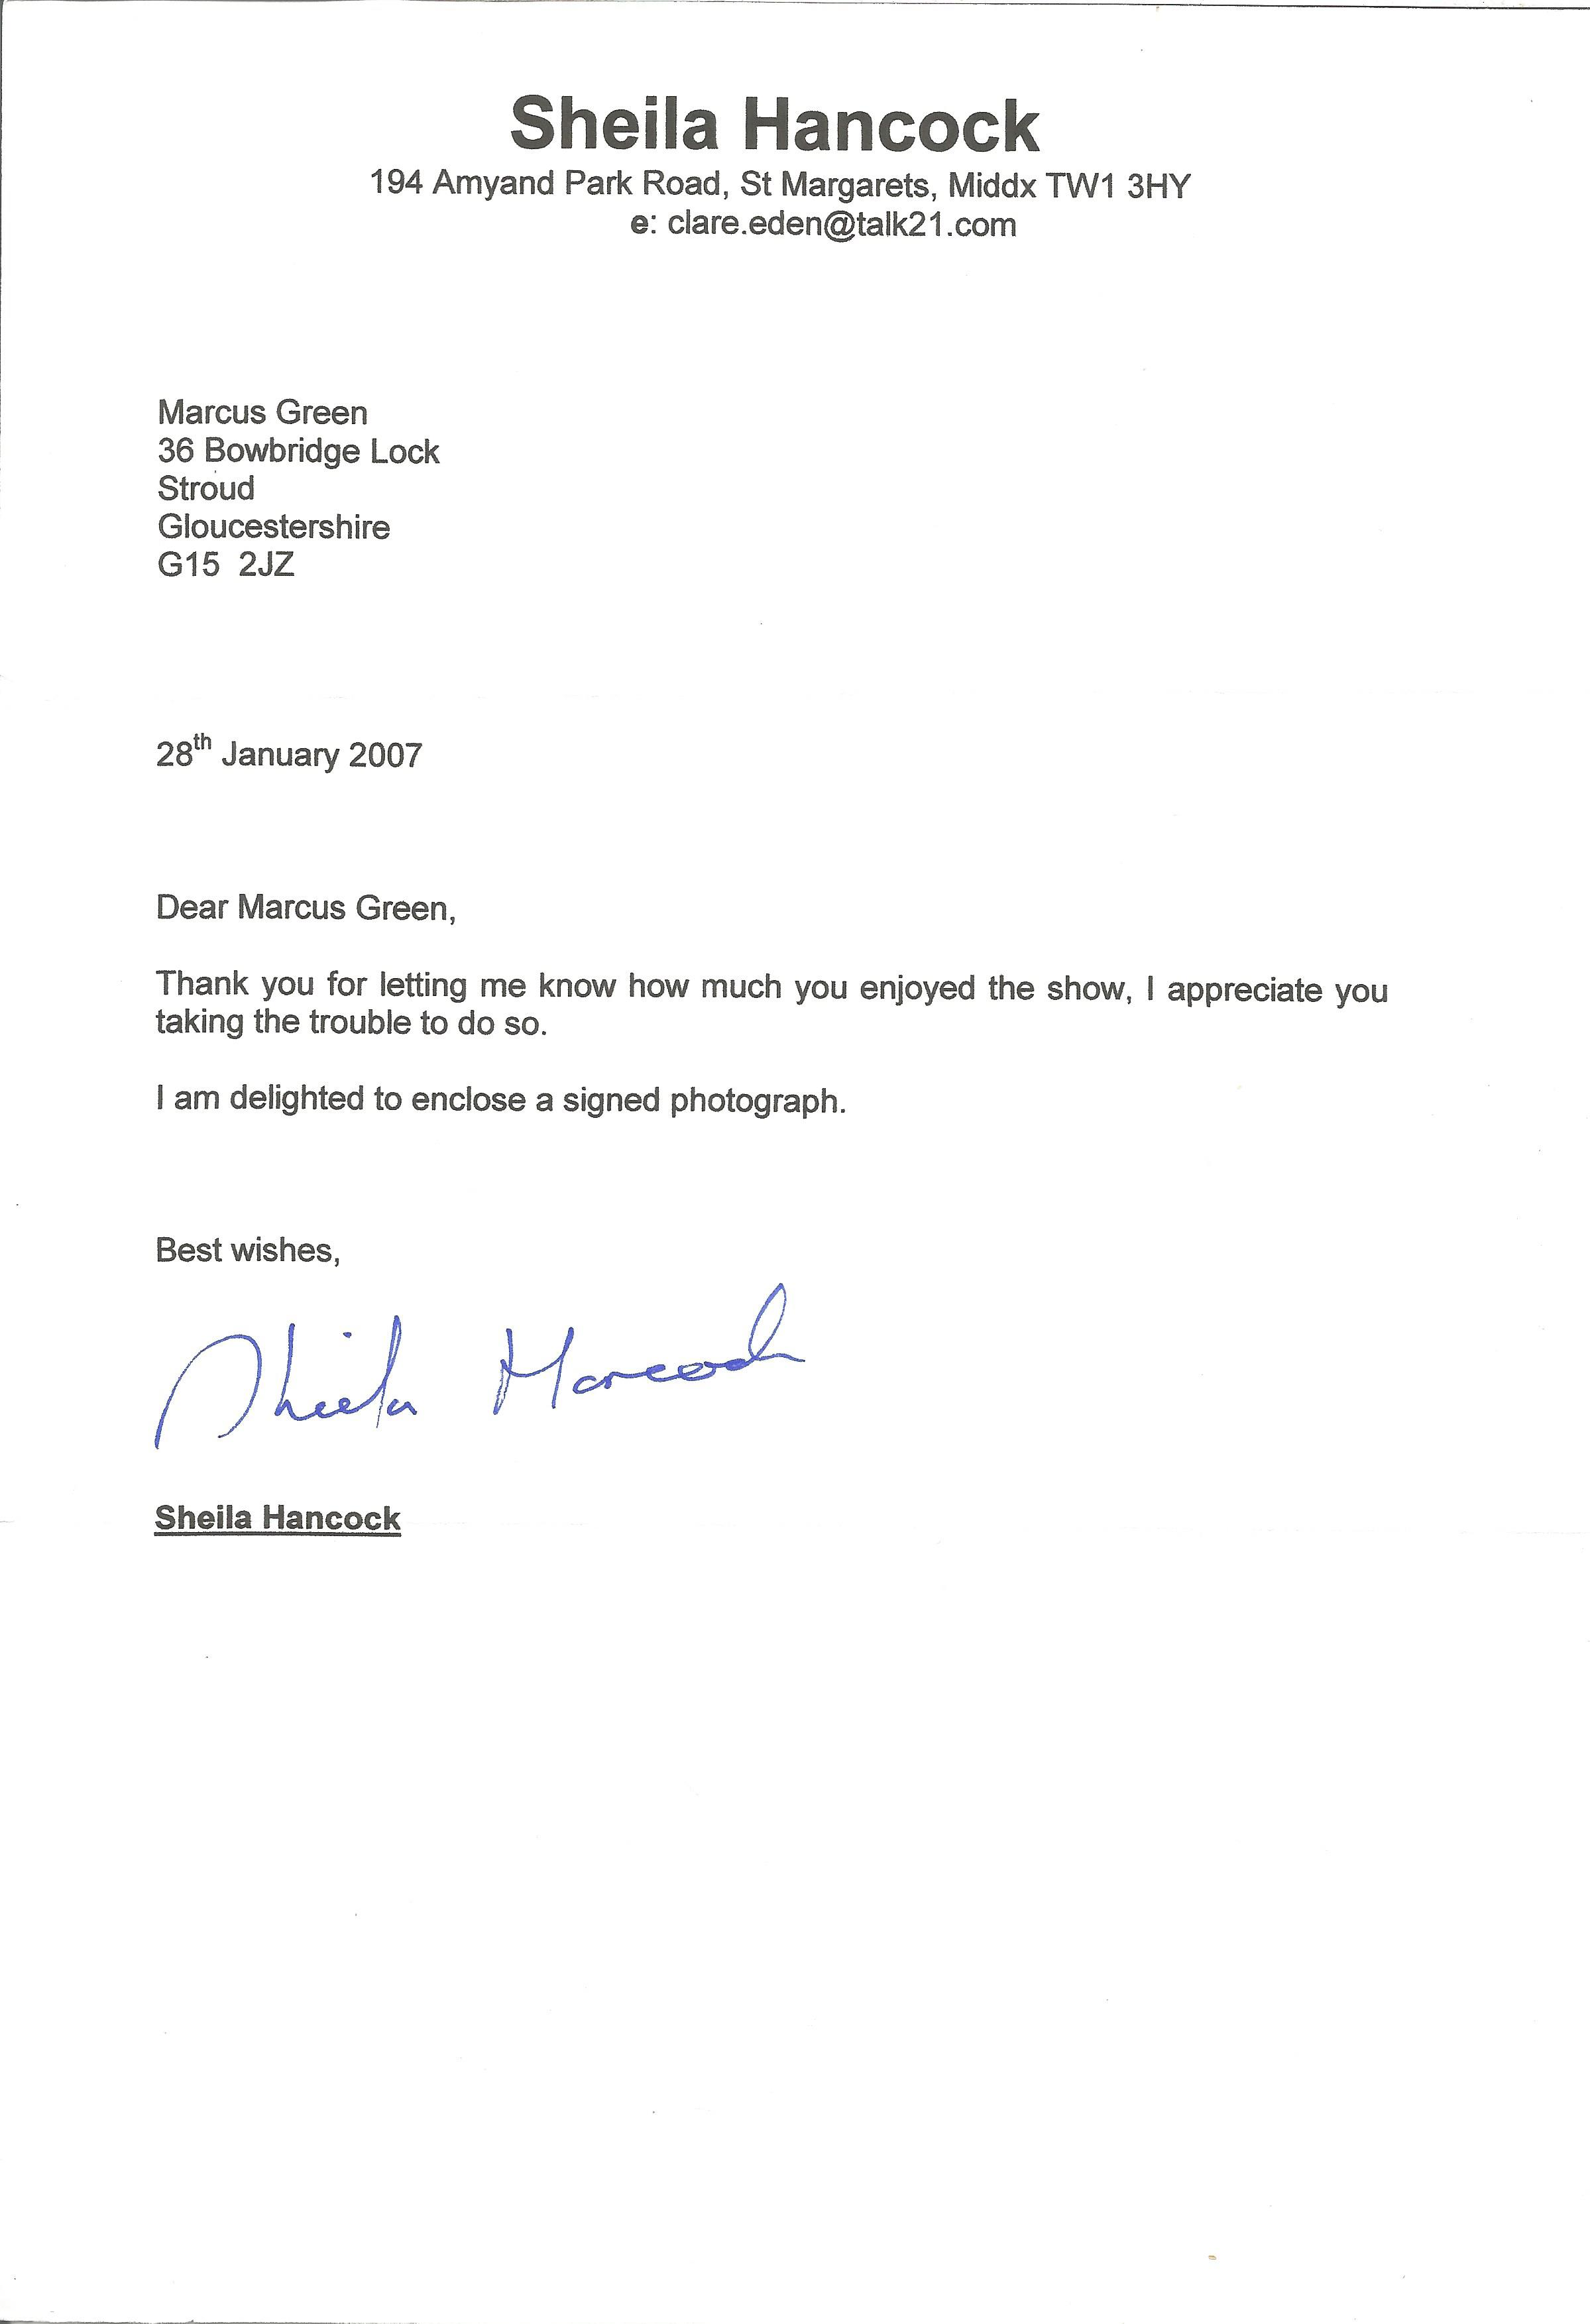 Actress Sheila Hancock, brief letter signed and dated on her headed paper enclosing a signed